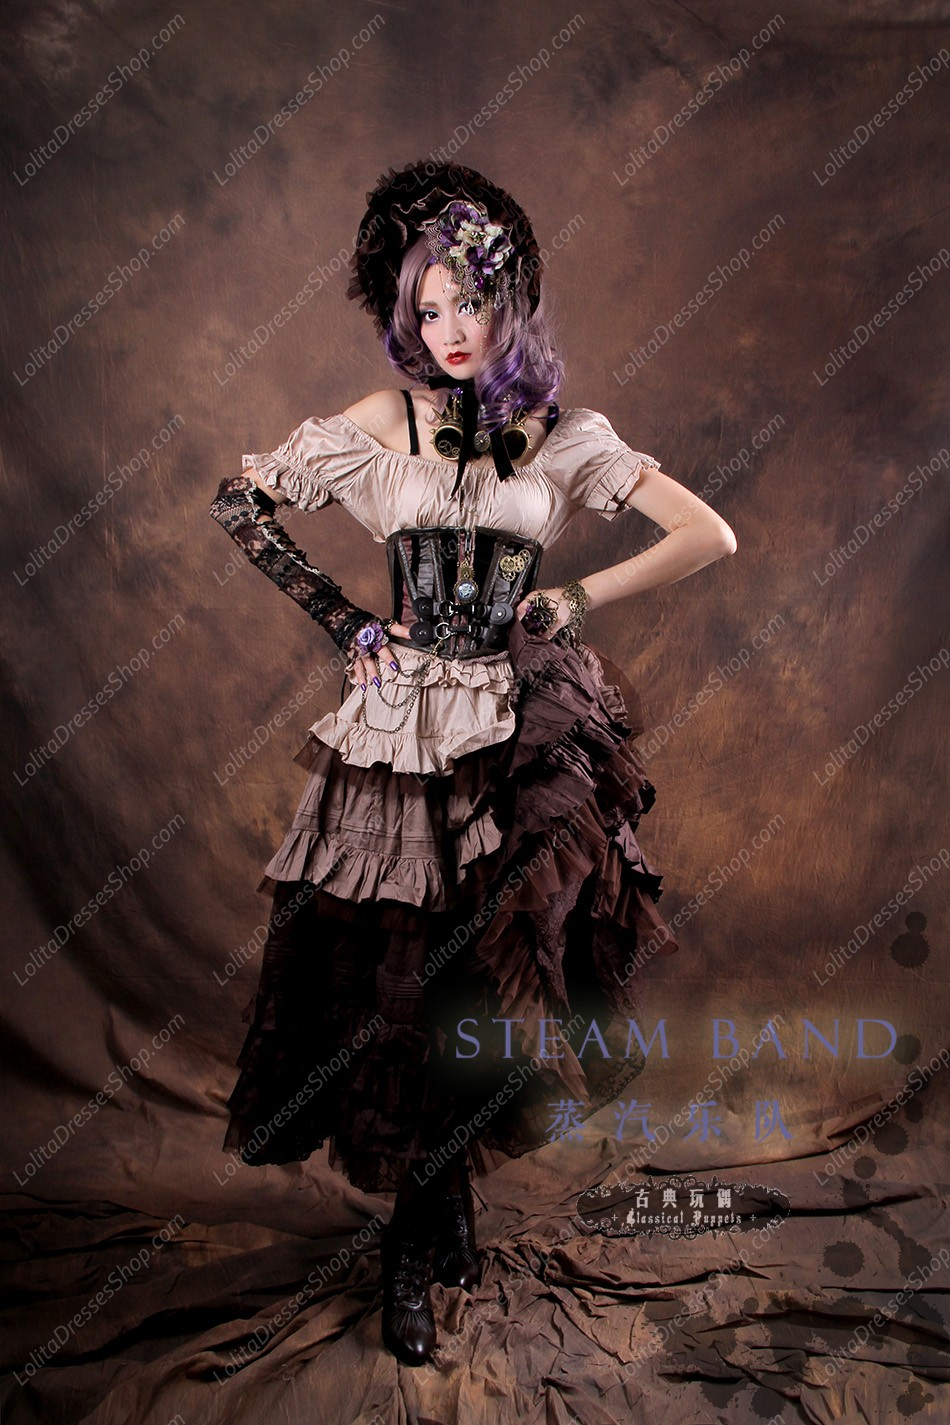 Sweet Steam Band Leather Fishbone Short Classical Puppets Lolita Girdles